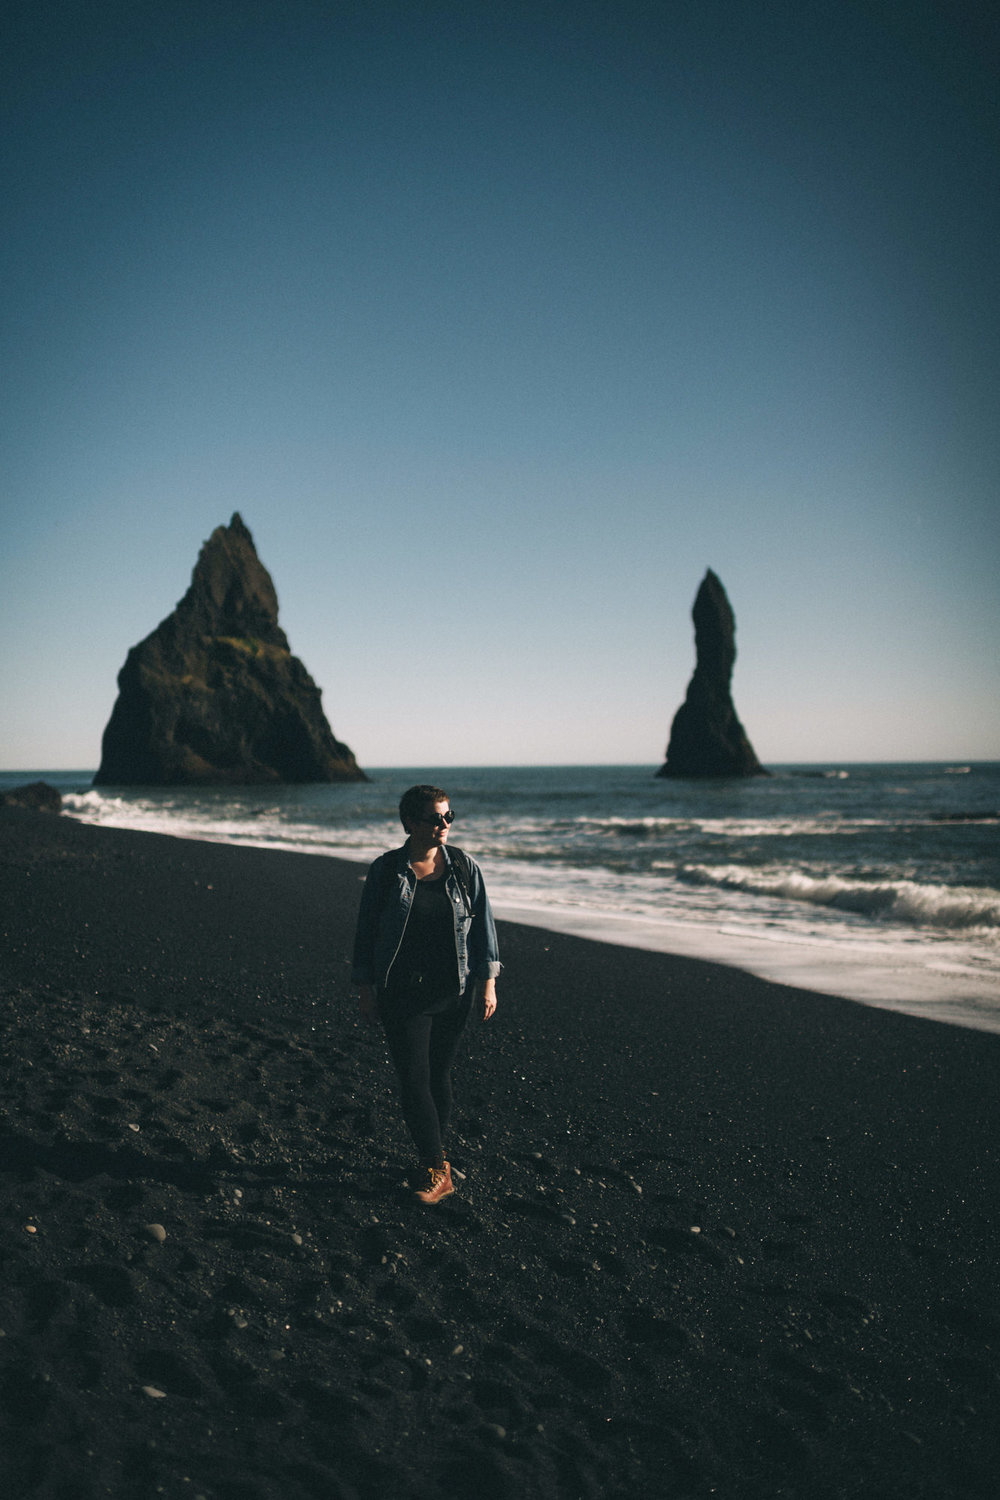 Sarah-Katherine-Davis-Photography-Iceland-Adventure-Elopement-Photographer-Louisville-Kentucky-Wedding-Photographer-Travel-Vik-Beach-Engagement-Session-Cozy-Iceland-South-Coast-393edit.jpg